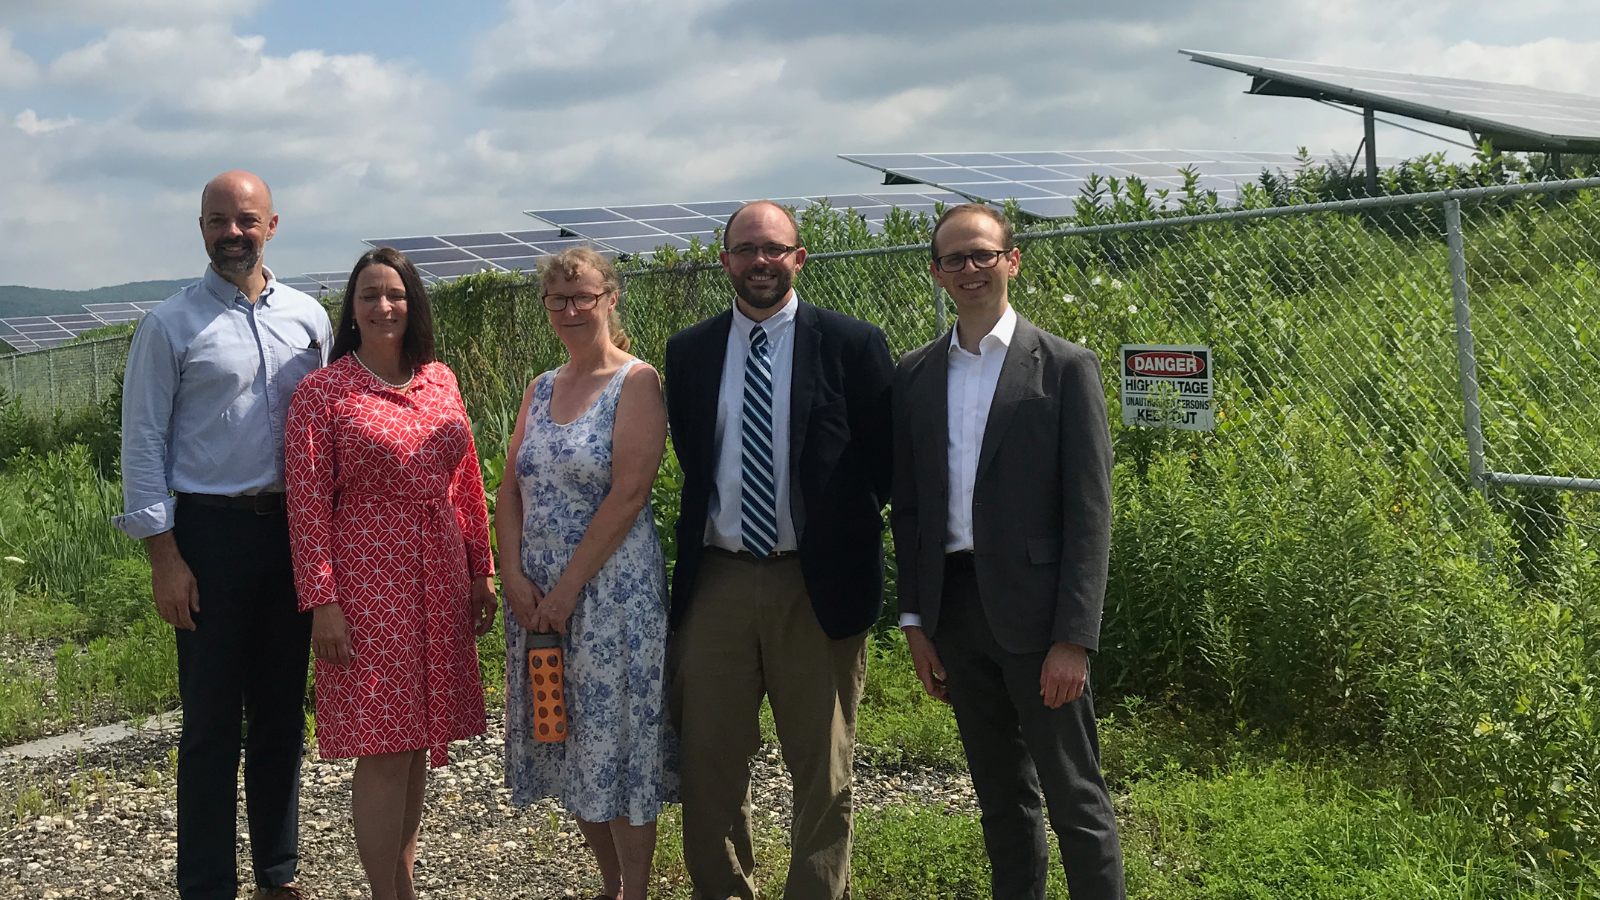 Together with Pittsfield Mayor Linda Tyer and State Senator Adam Hinds, we celebrated local progress on solar energy in the Berkshires.